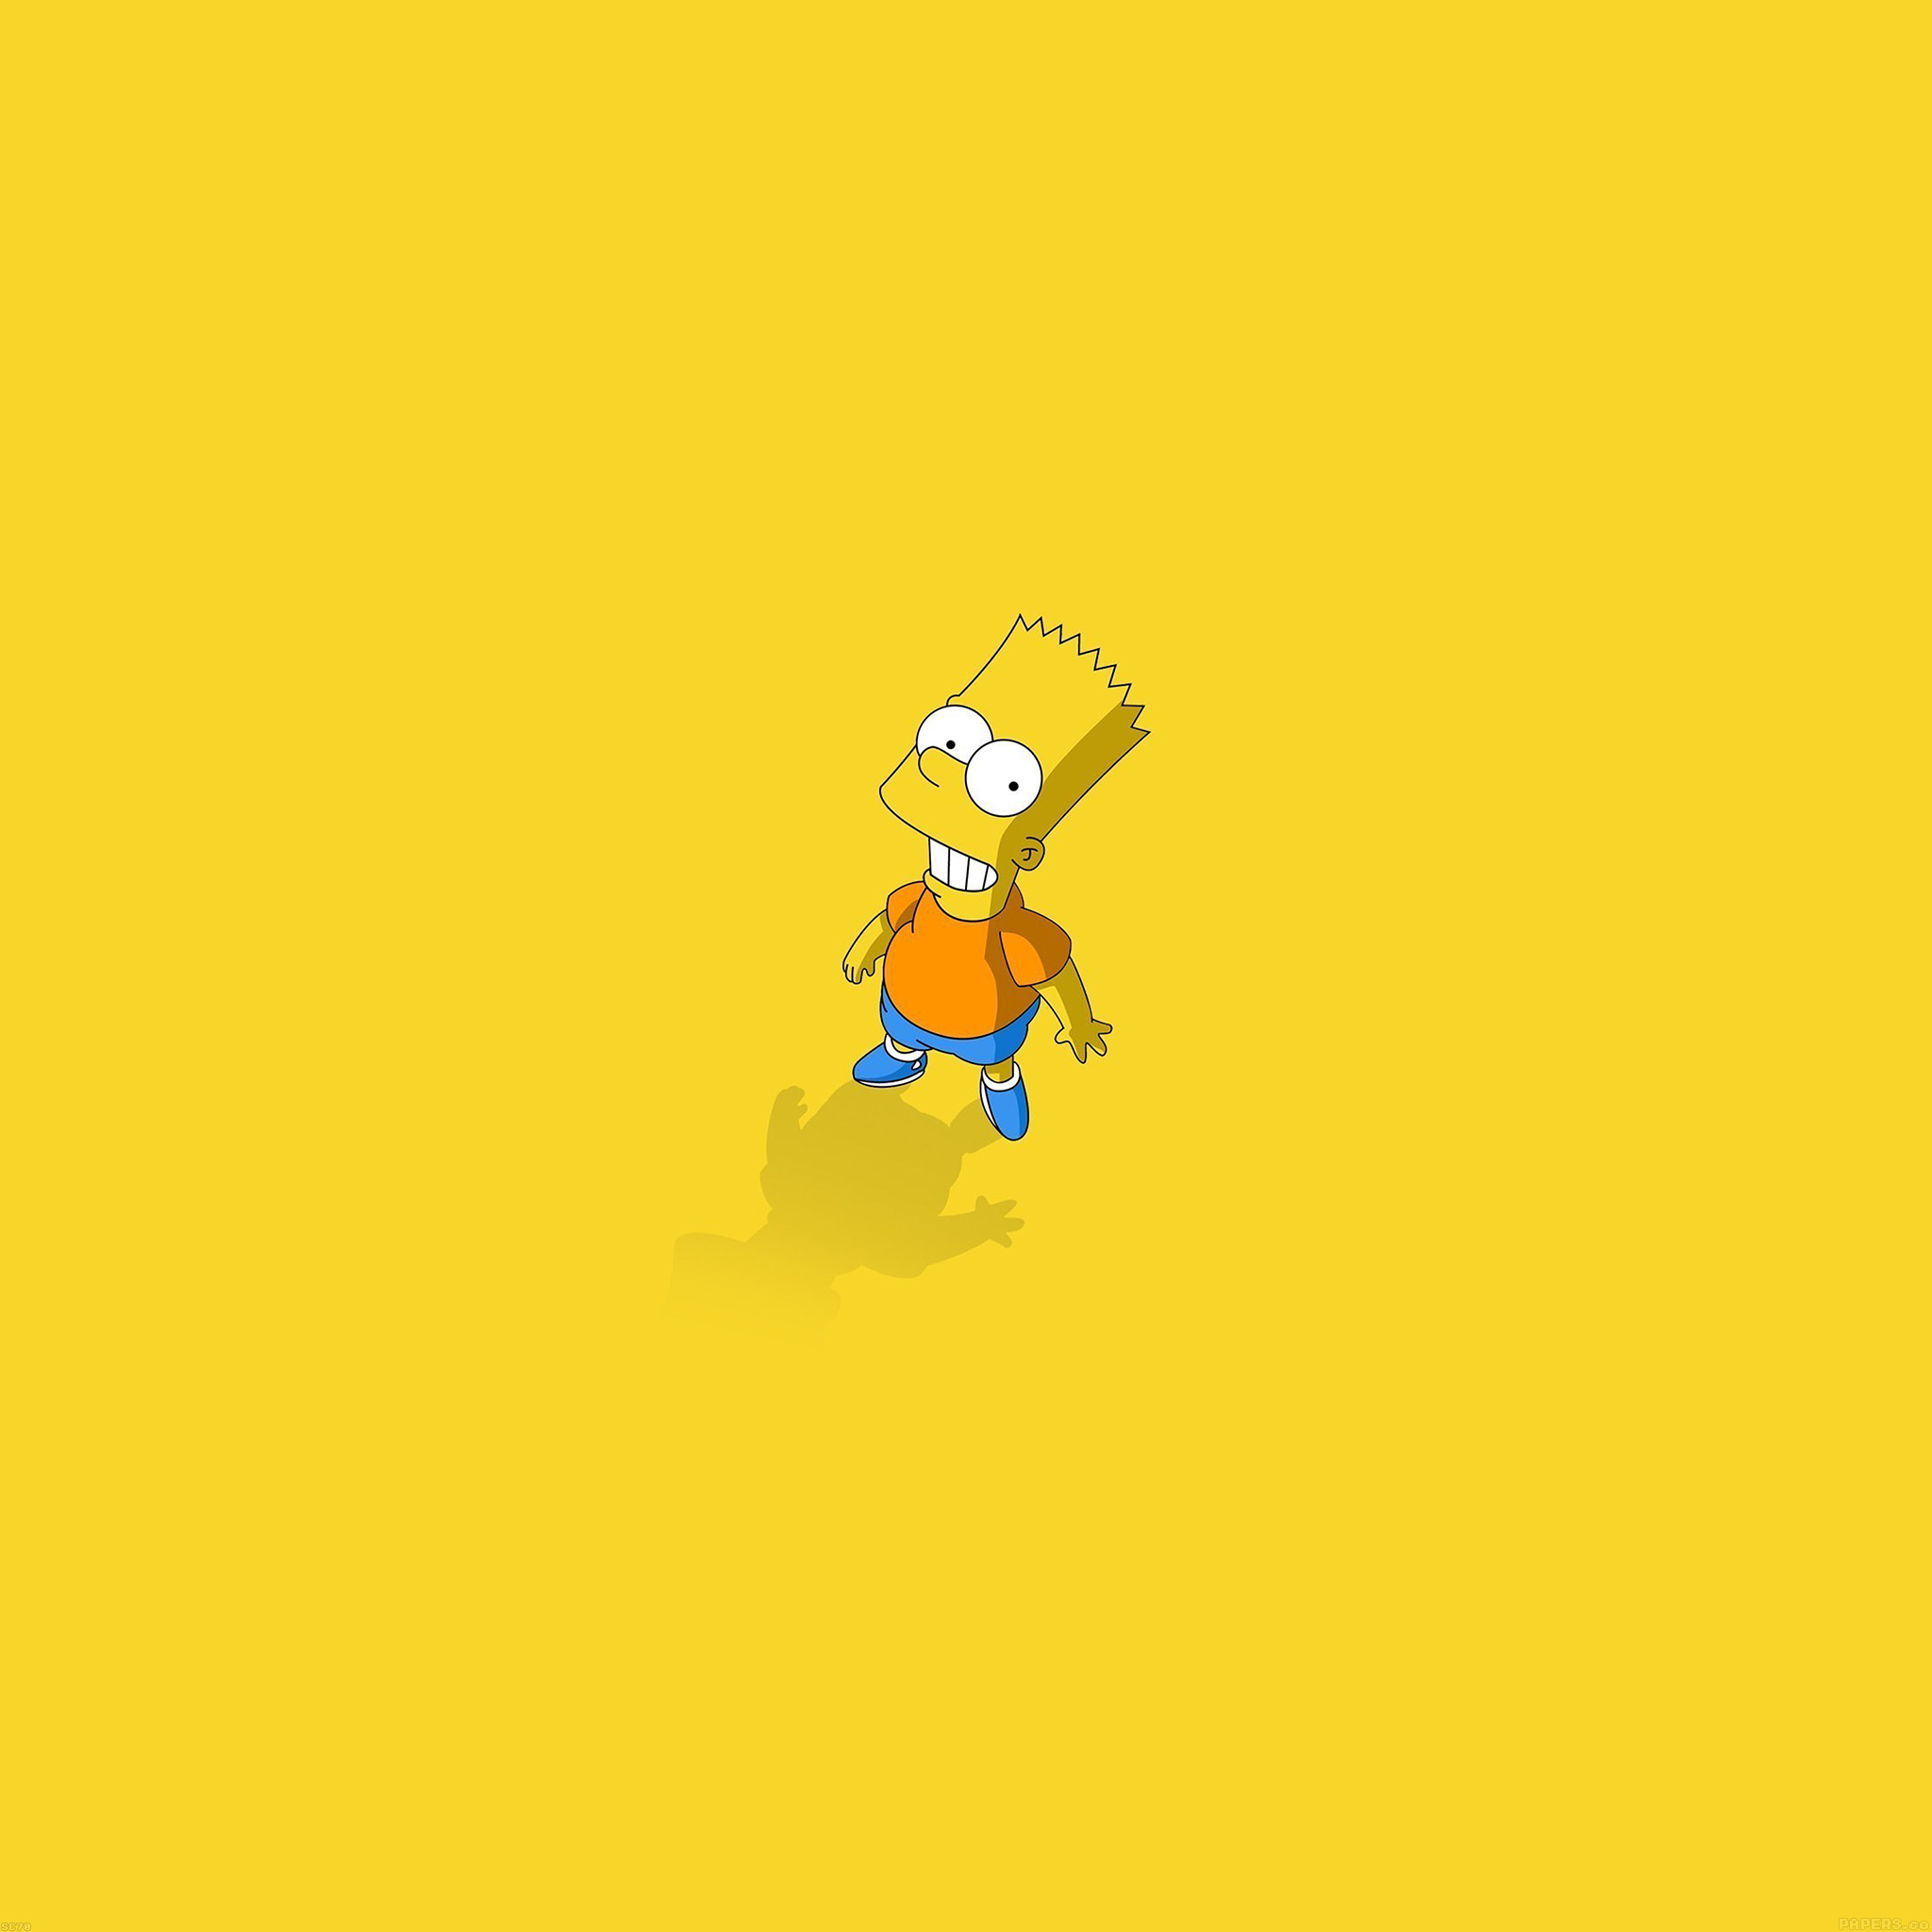 Af48-hi-i-am-bart-simpsons-minimal-cartoon